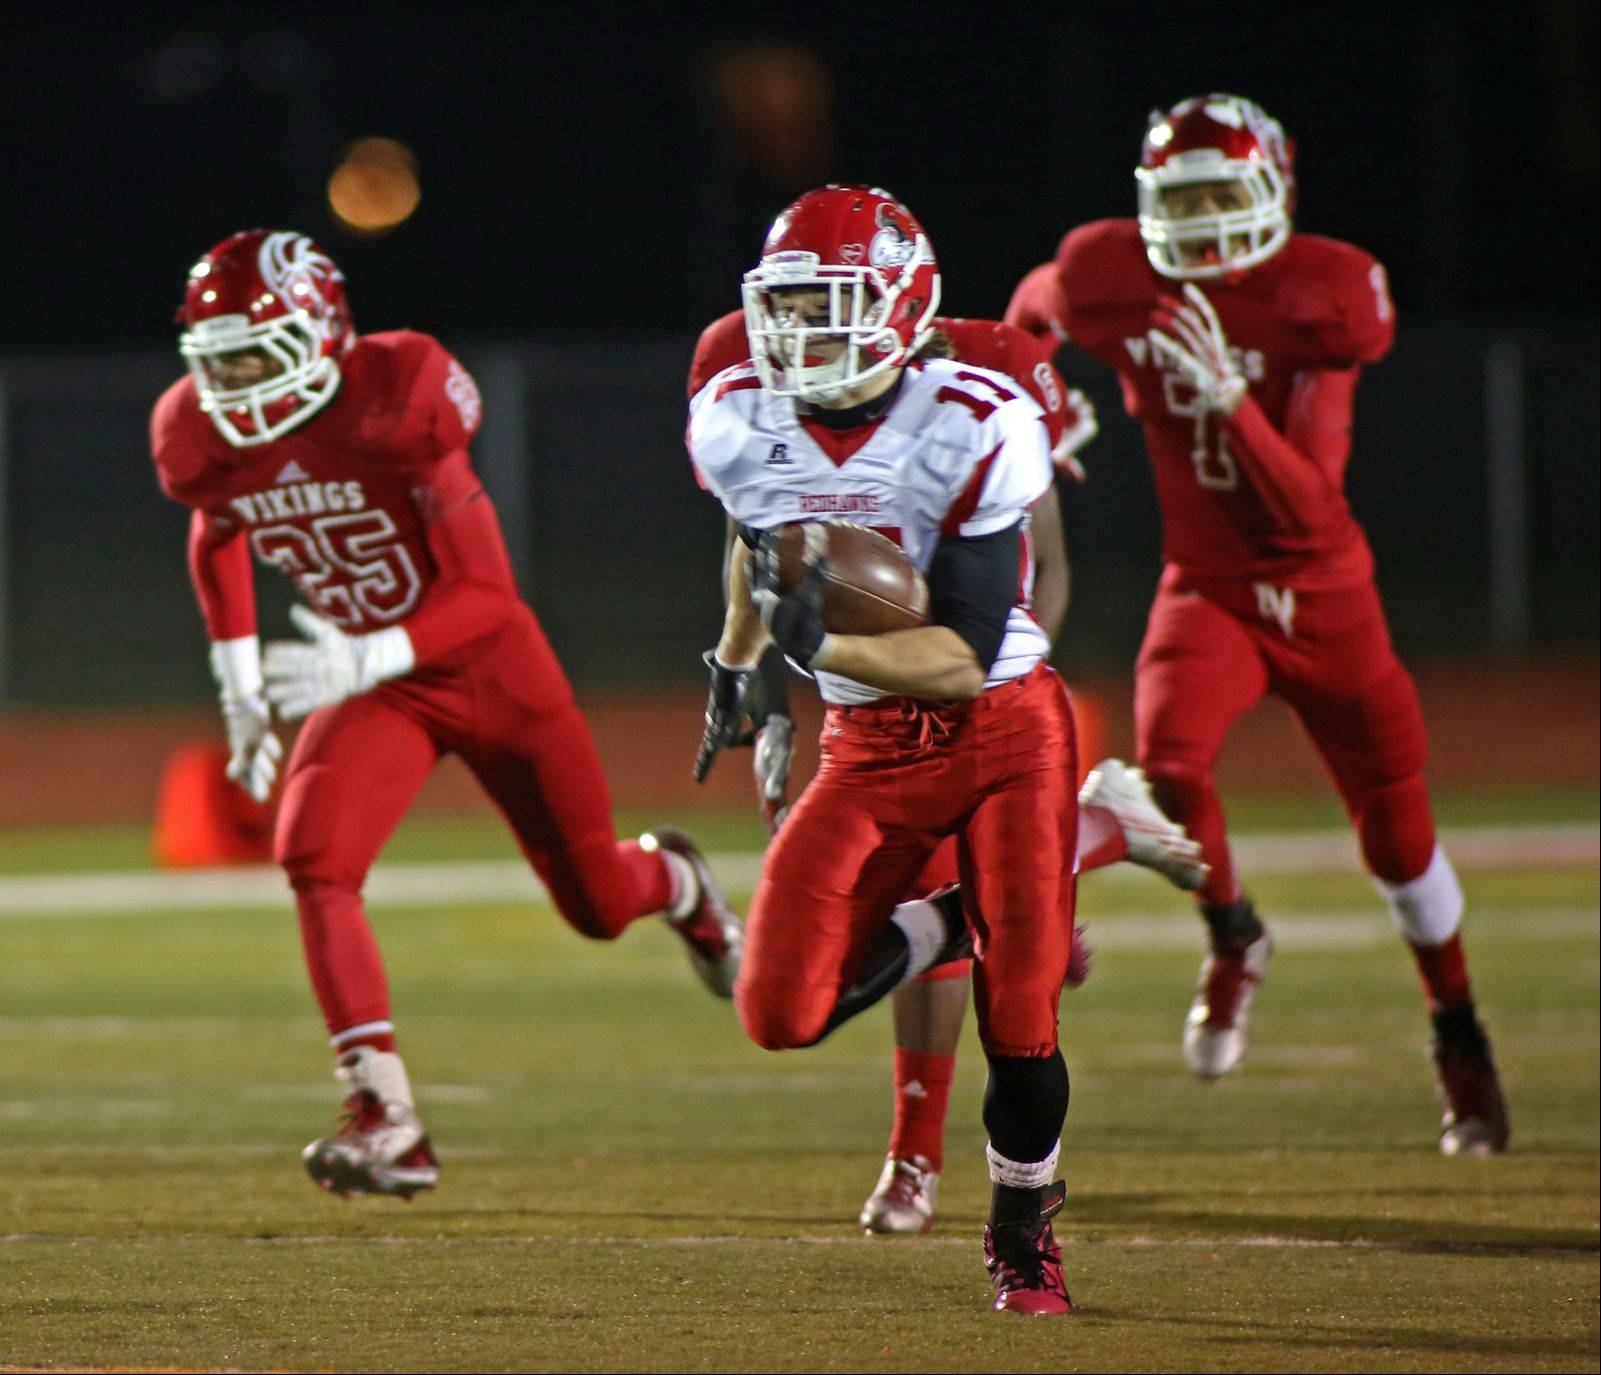 Images: Naperville Central vs. Homewood-Flossmoor Playoff Football